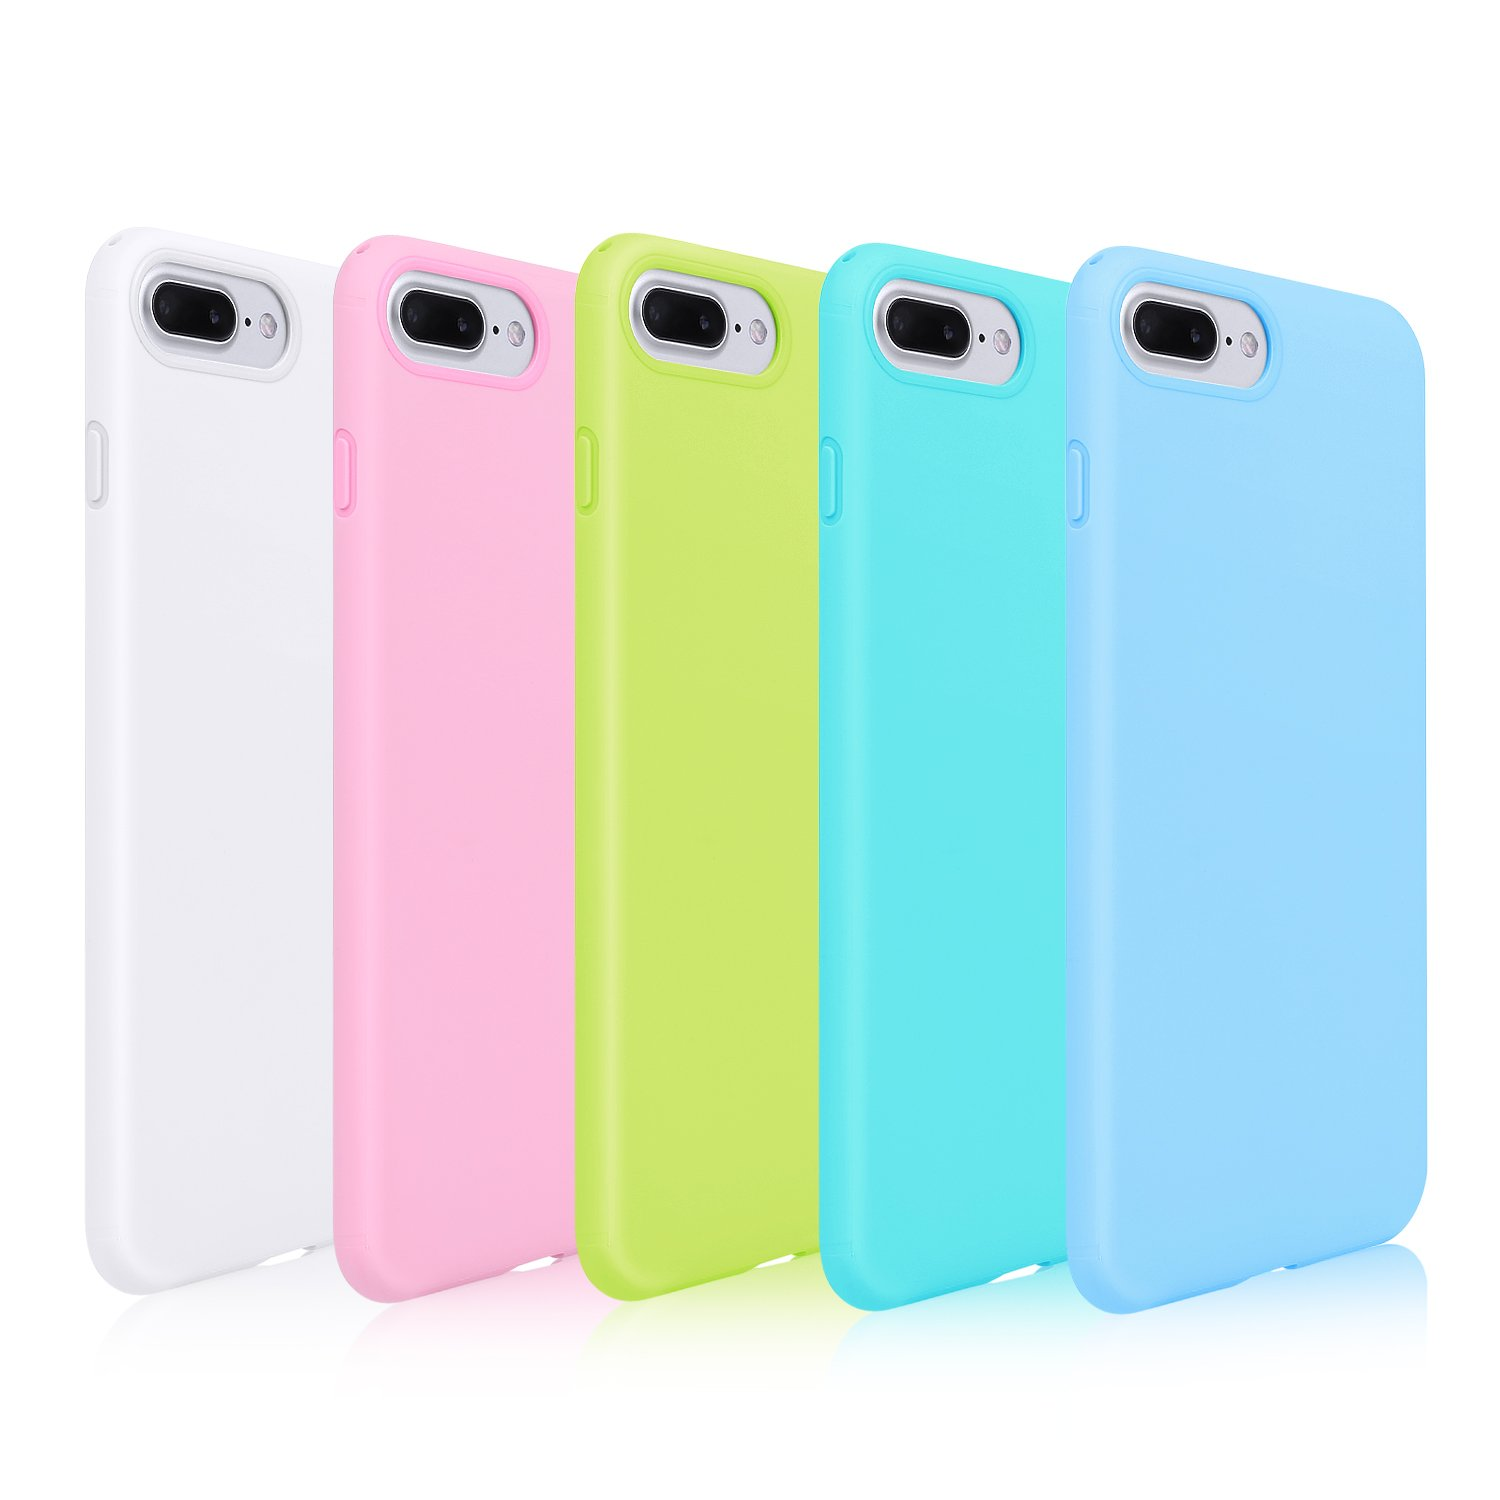 new arrival bf26d 243af Pofesun Sleek Silicone Gel Rubber Case Protective TPU Back Cover Compatible  for 5.5 inches iPhone 7 Plus 2016 / iPhone 8 Plus 2017-5 Pack (White, ...